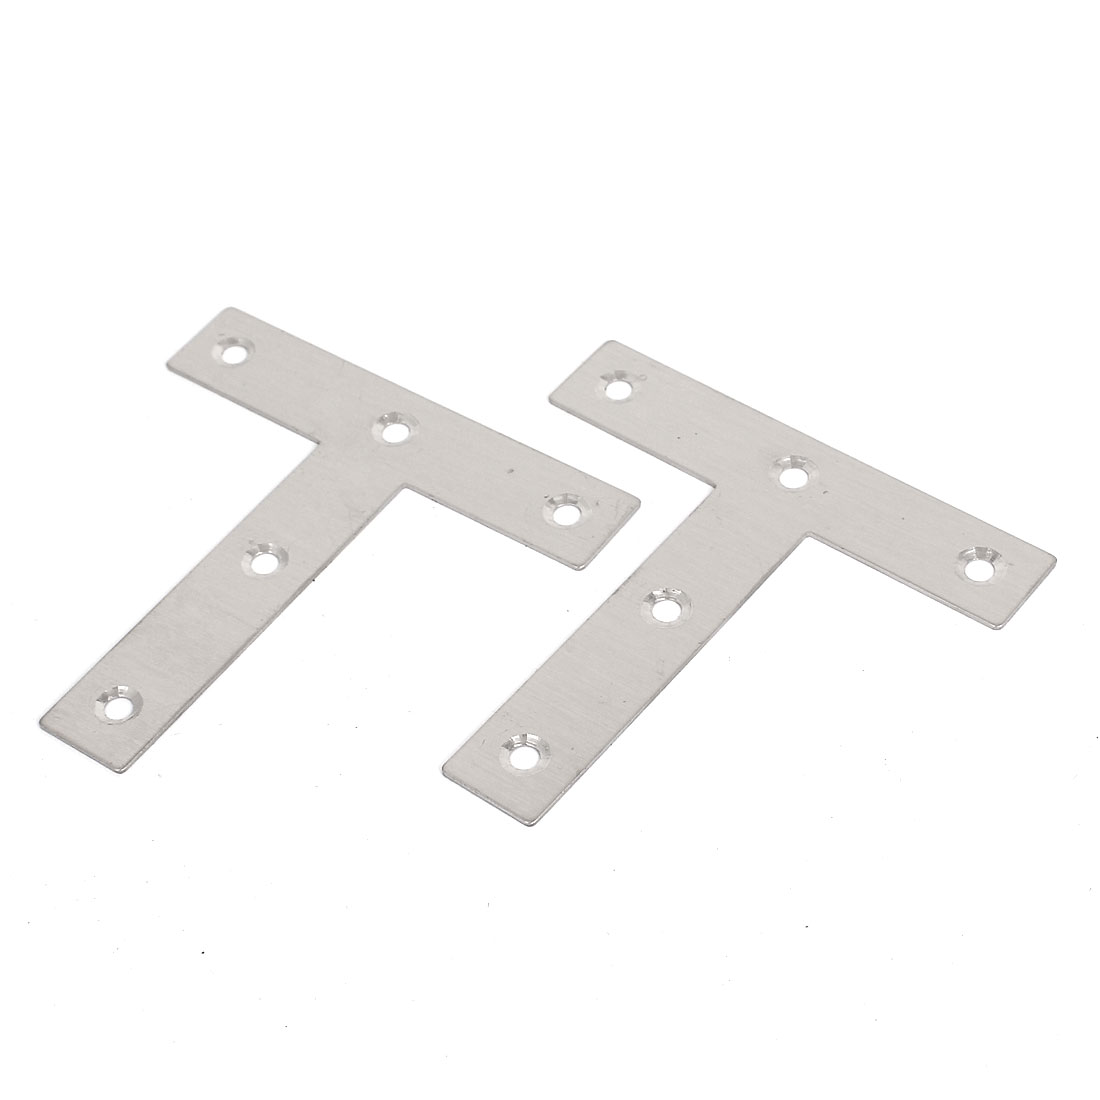 4 Pcs 80mmx80mmx16mm Metal T Shaped Flat Plate Corner Brace Angle Brackets